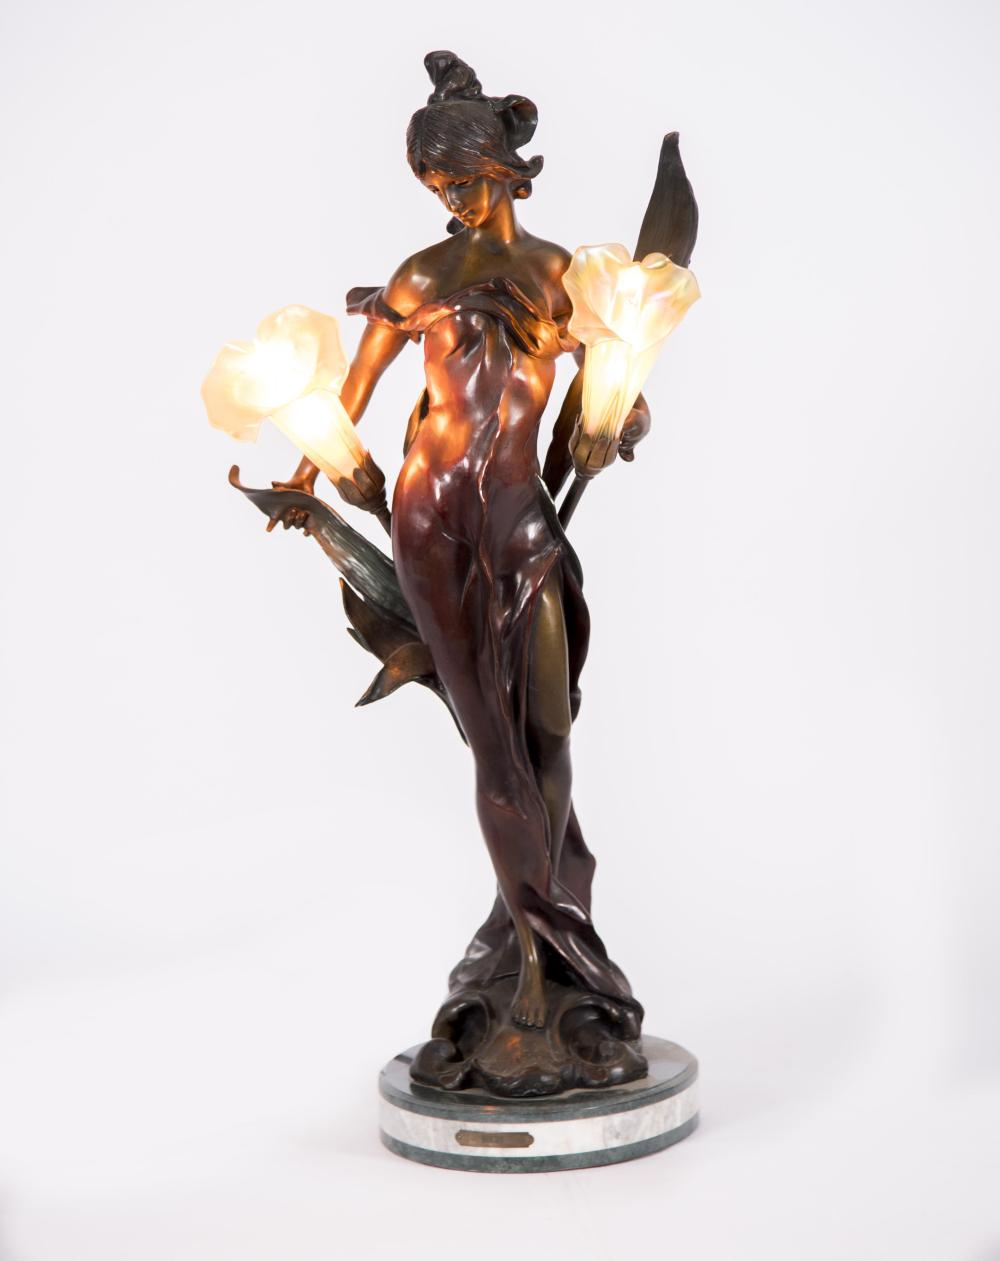 Bronze Lady after Pierre Roche (1855-1922) 28 inches in height